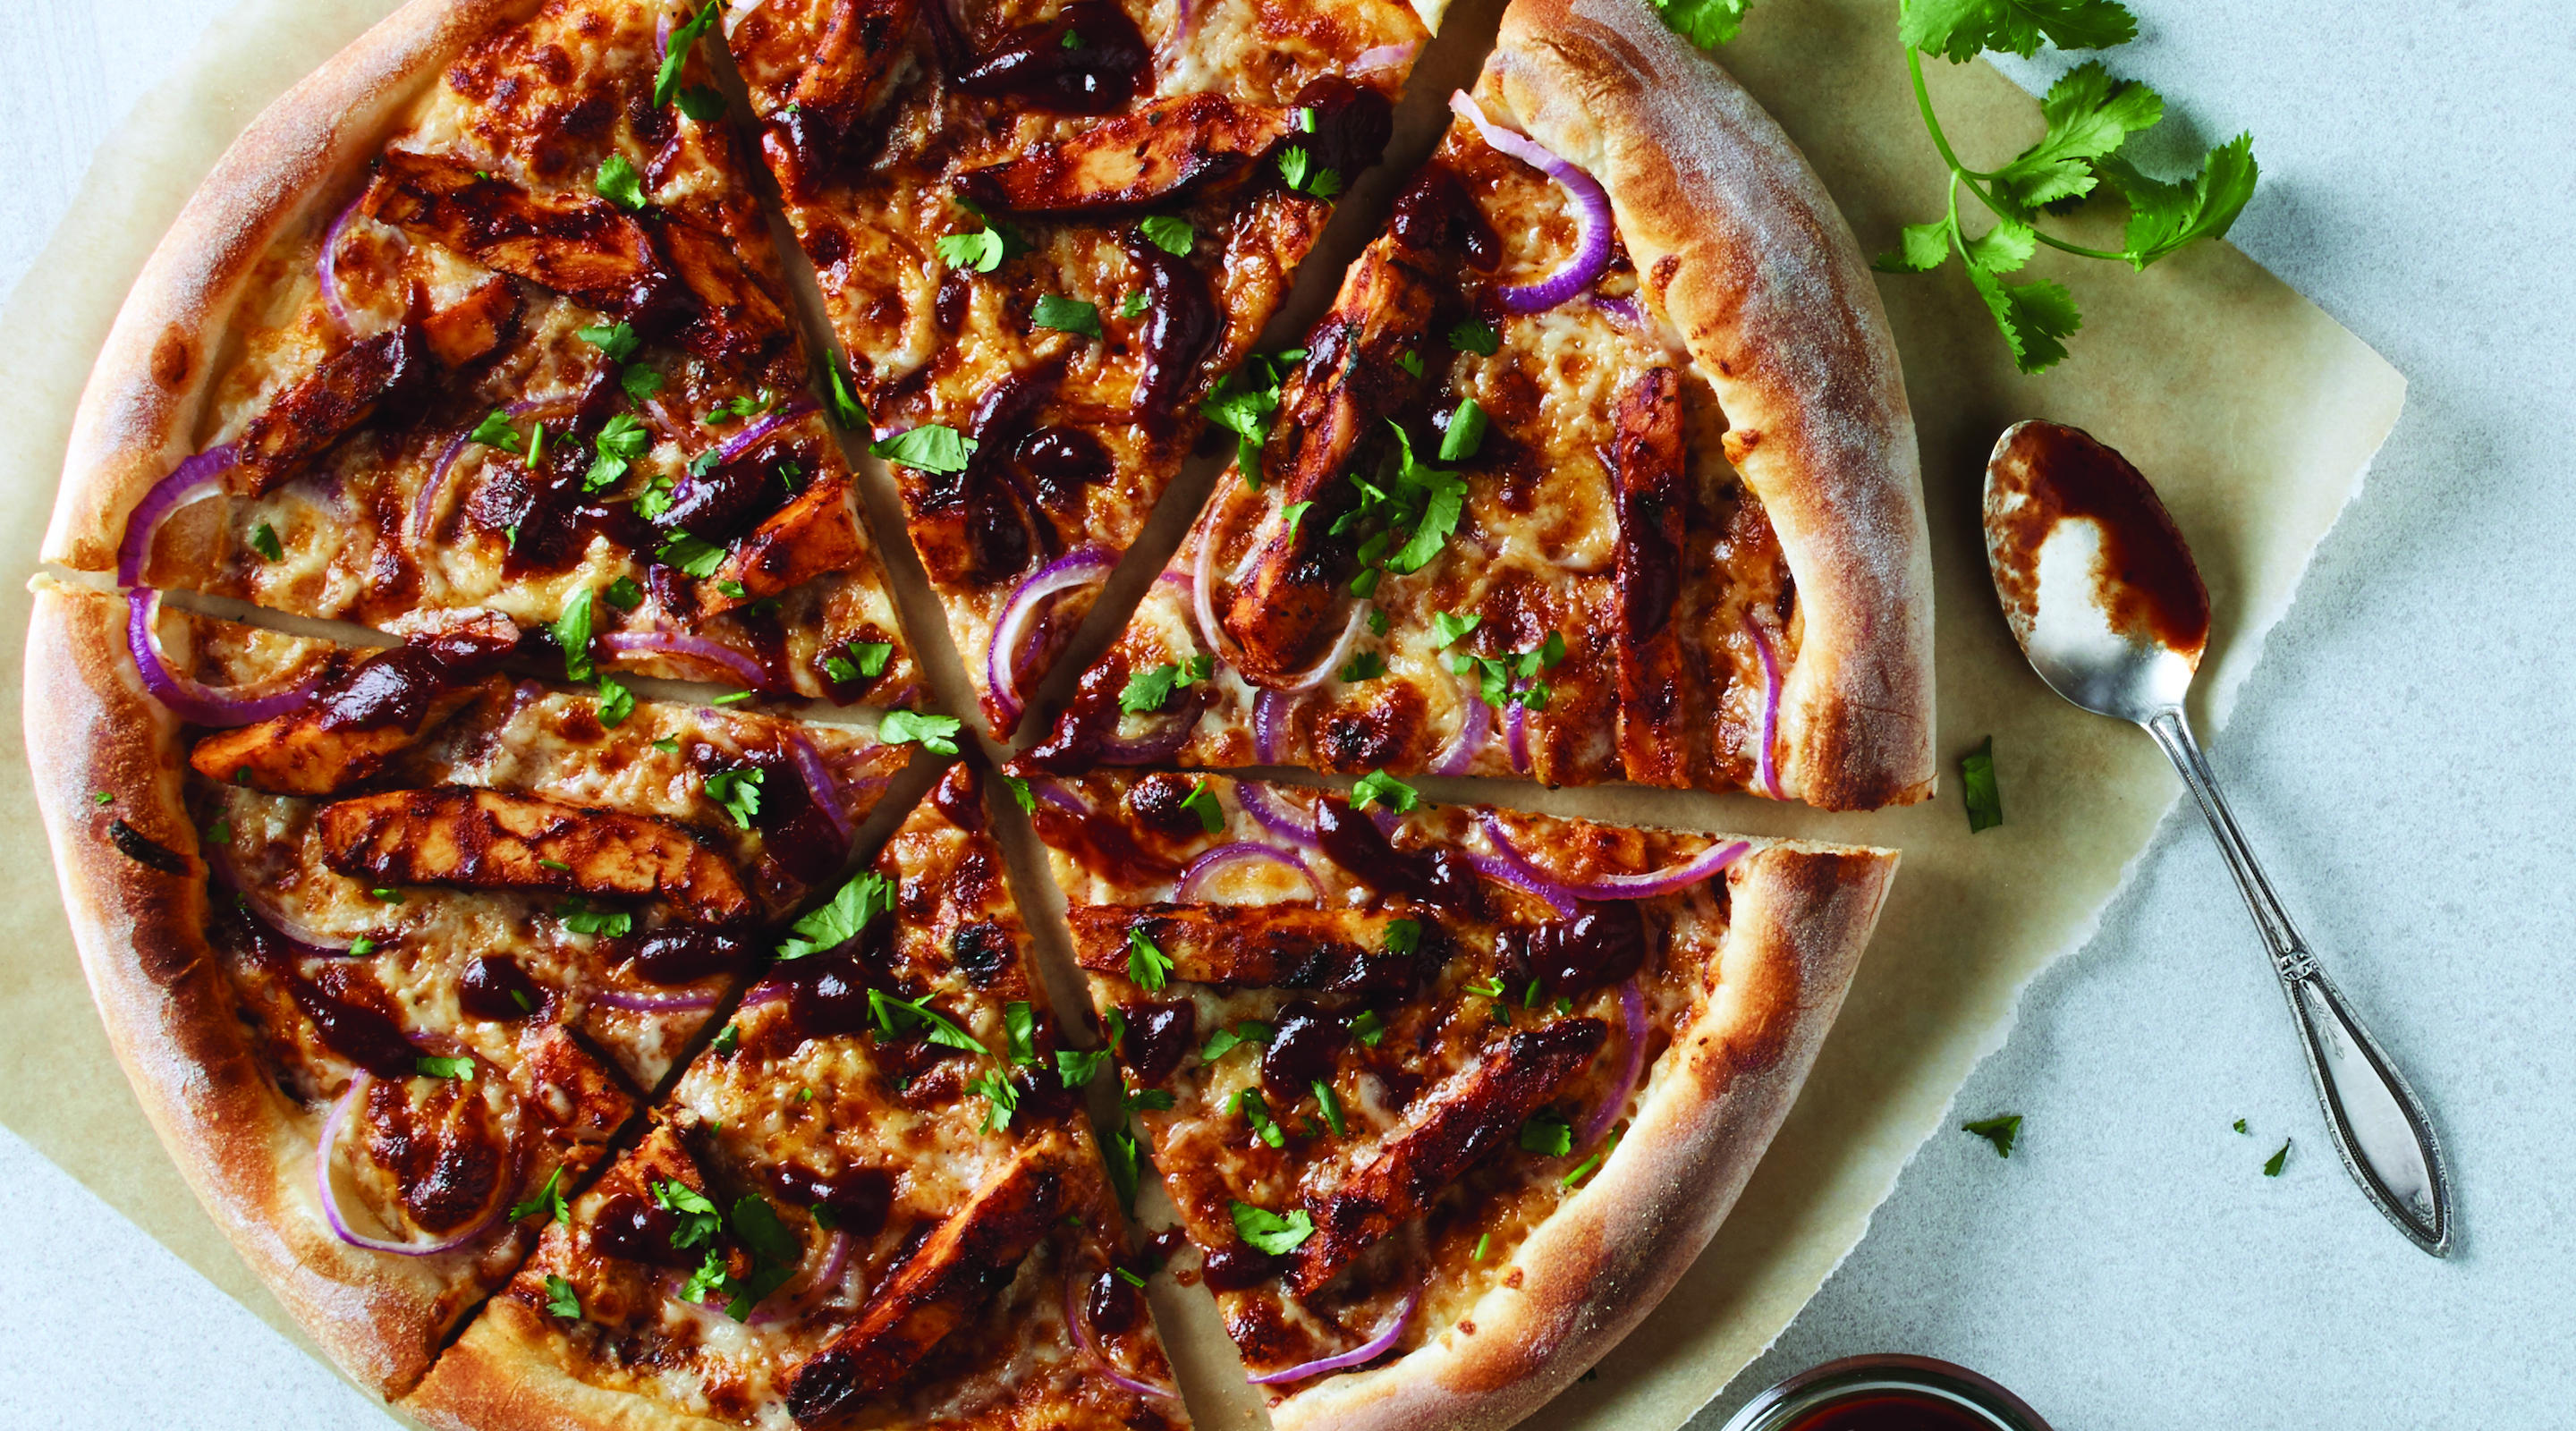 Created here in 1985. Our legendary BBQ Chicken Pizza sauce, smoked Gouda, red onions and fresh cilantro transform this original to iconic.